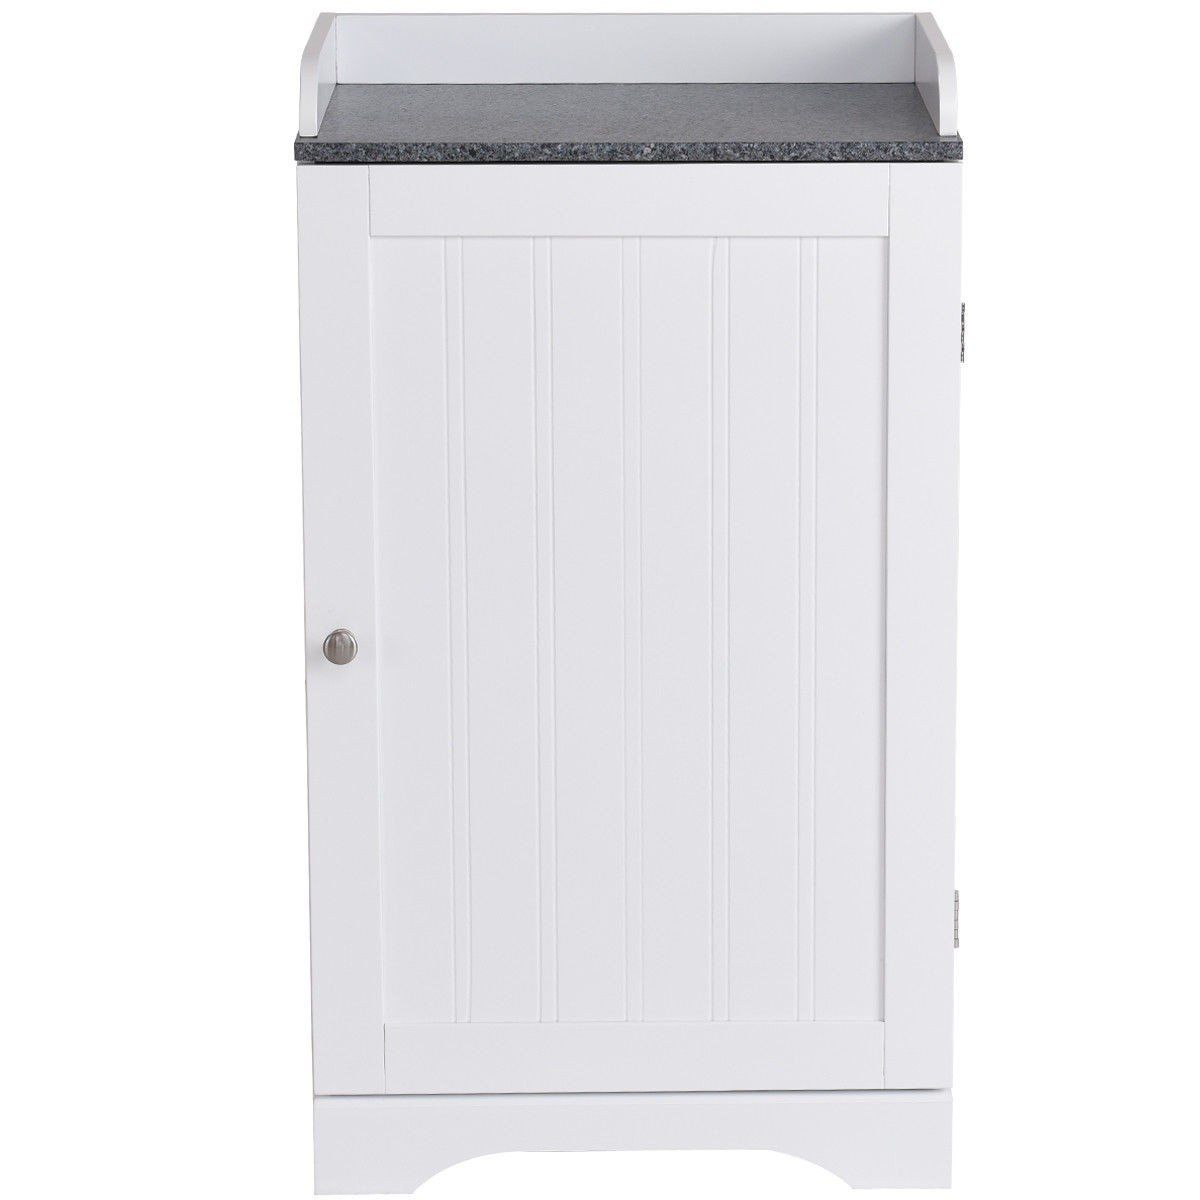 Myeasyshopping white wood bathroom freestanding storage cabinet w single door storage cabinet freestanding free standing